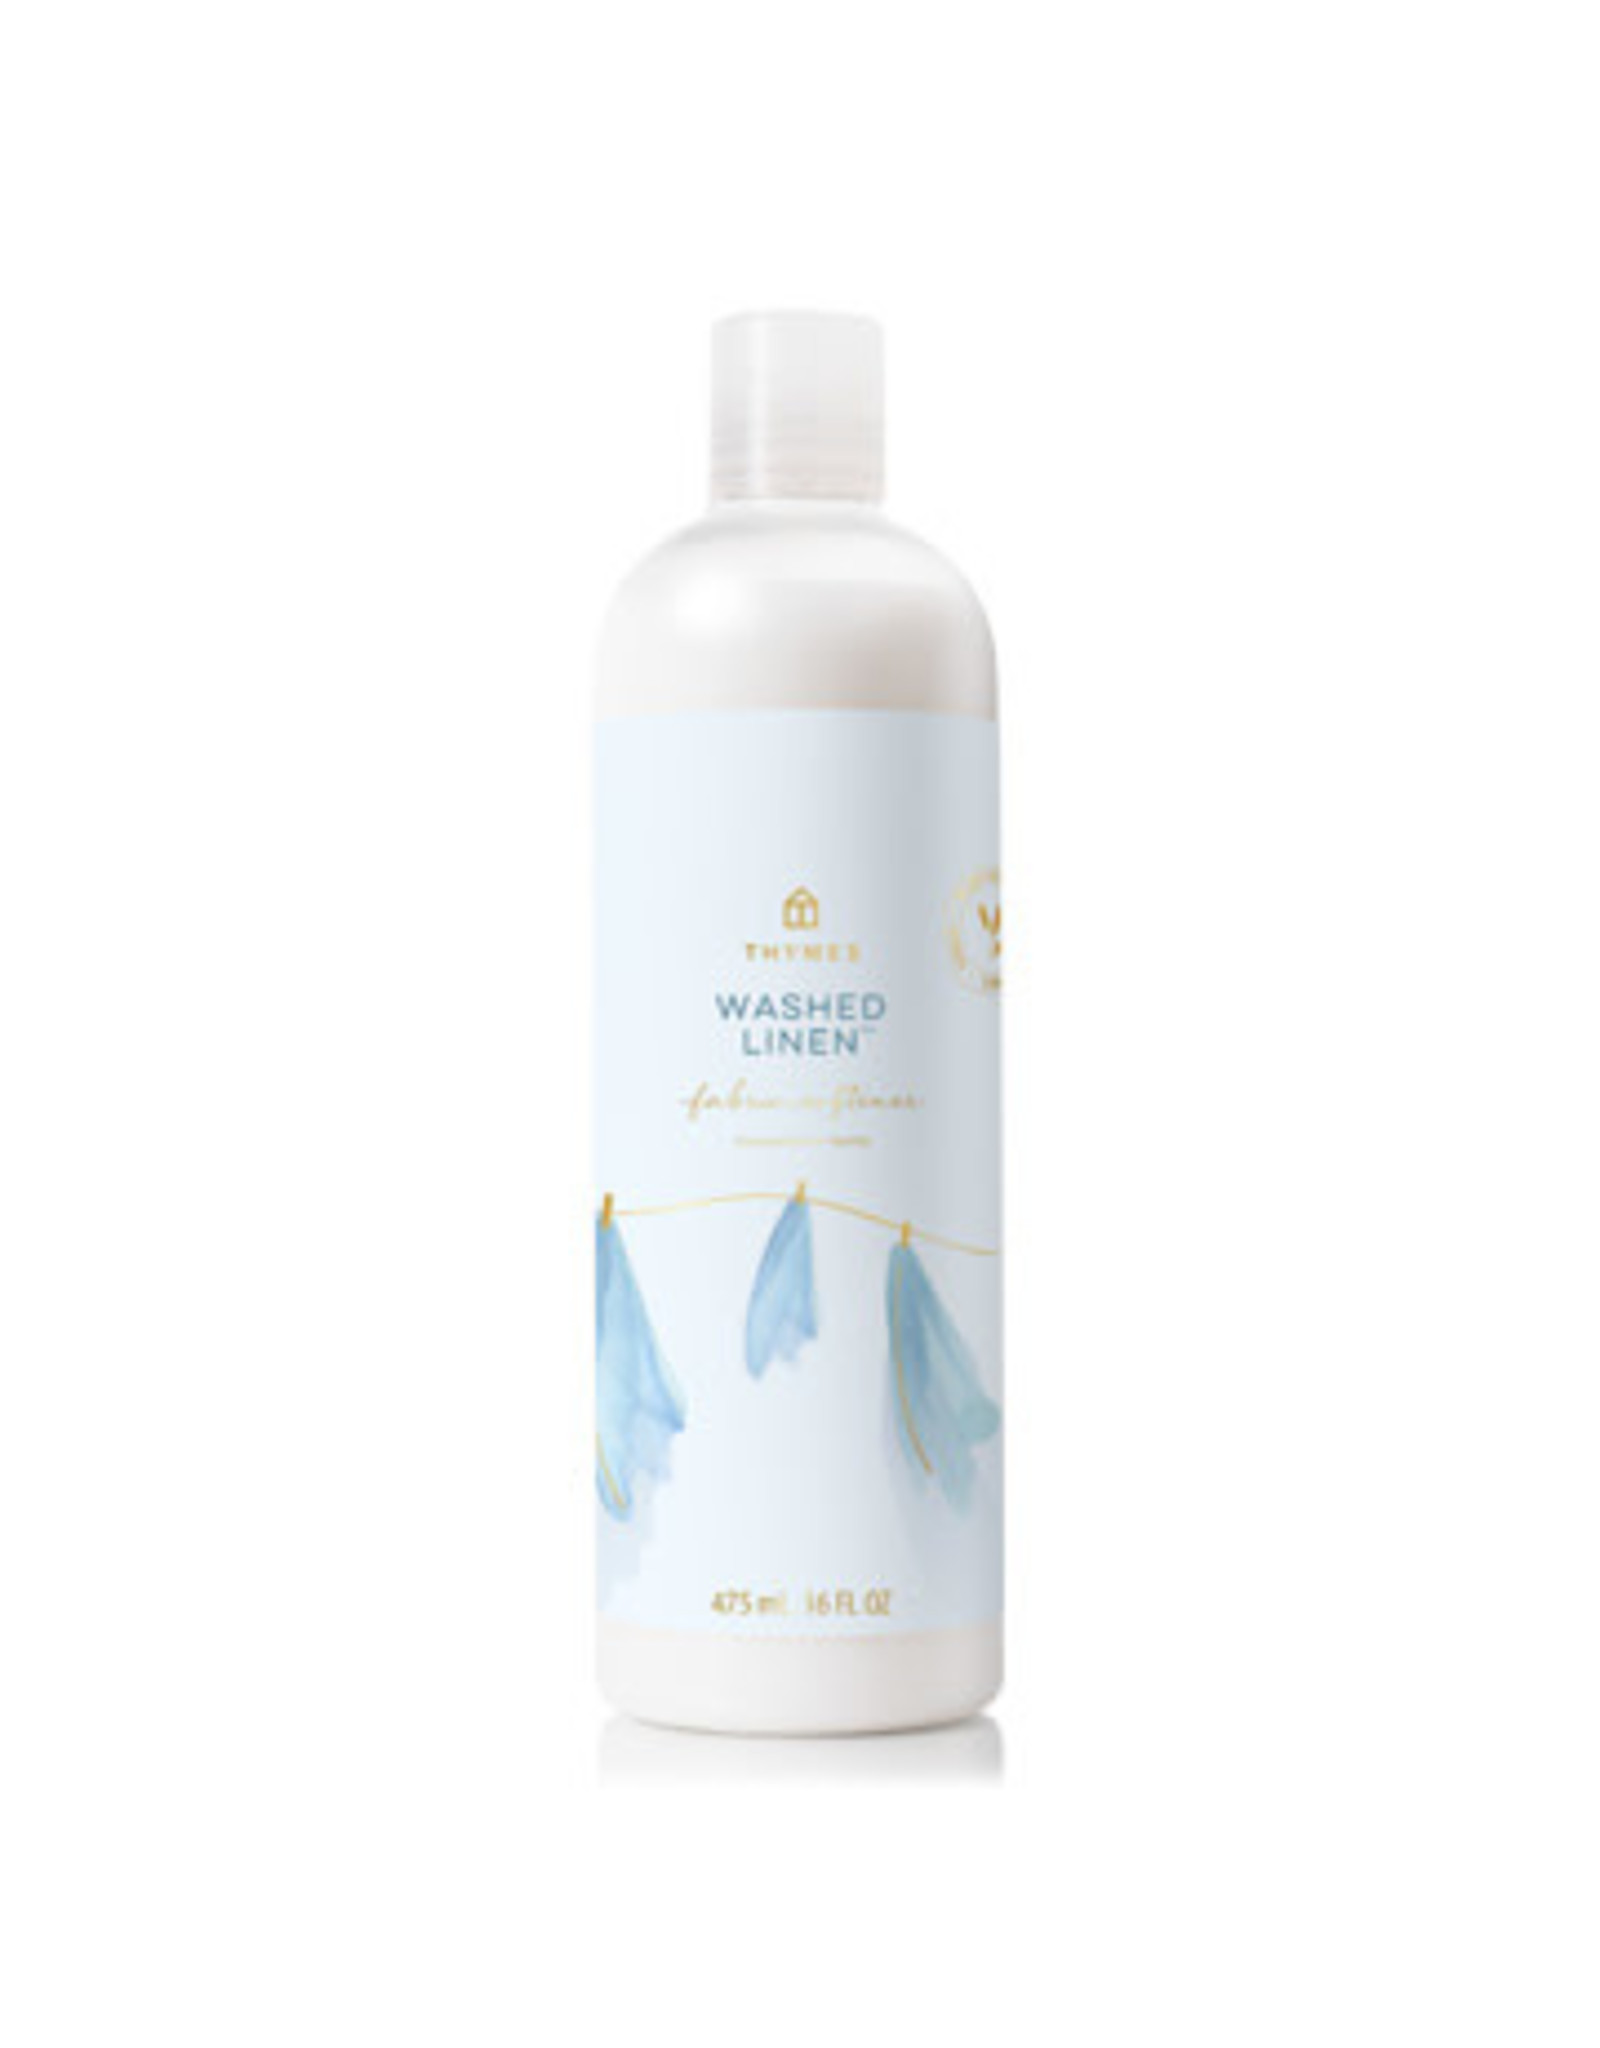 Thymes Washed Linen Fabric Softener